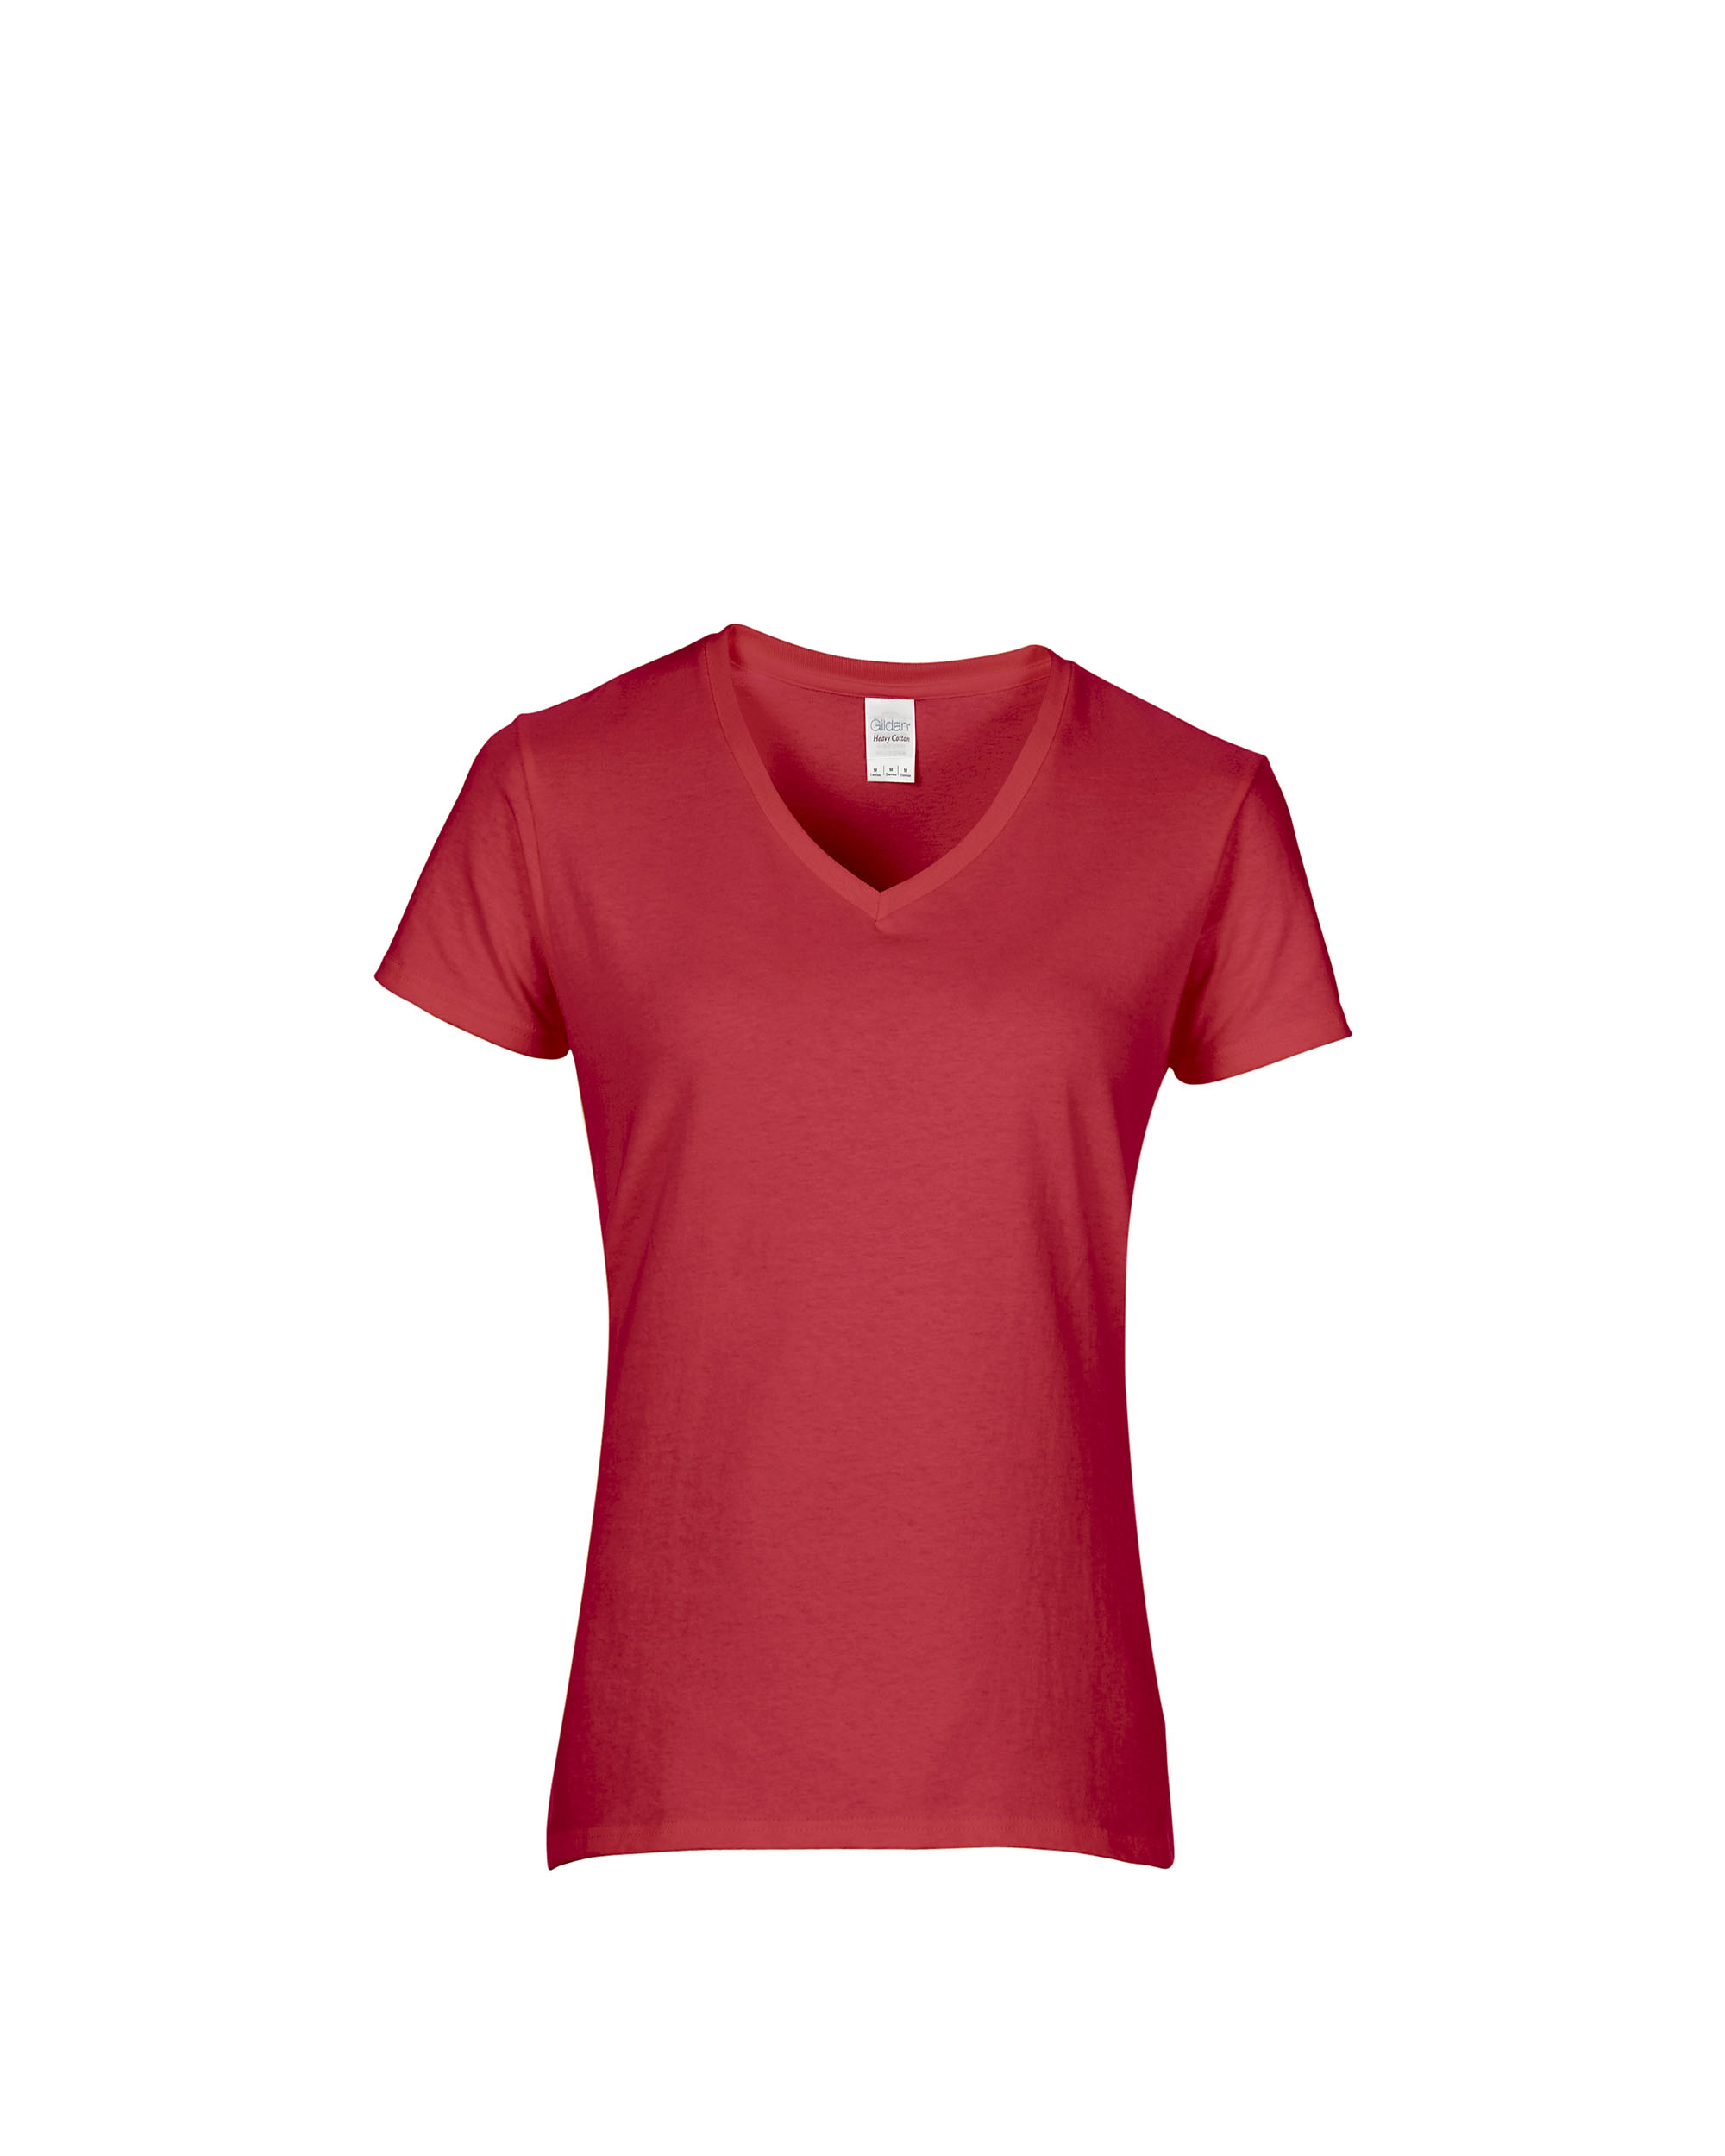 Buy red v neck shirt - 52% OFF! Share discount 65c34c35b2f3